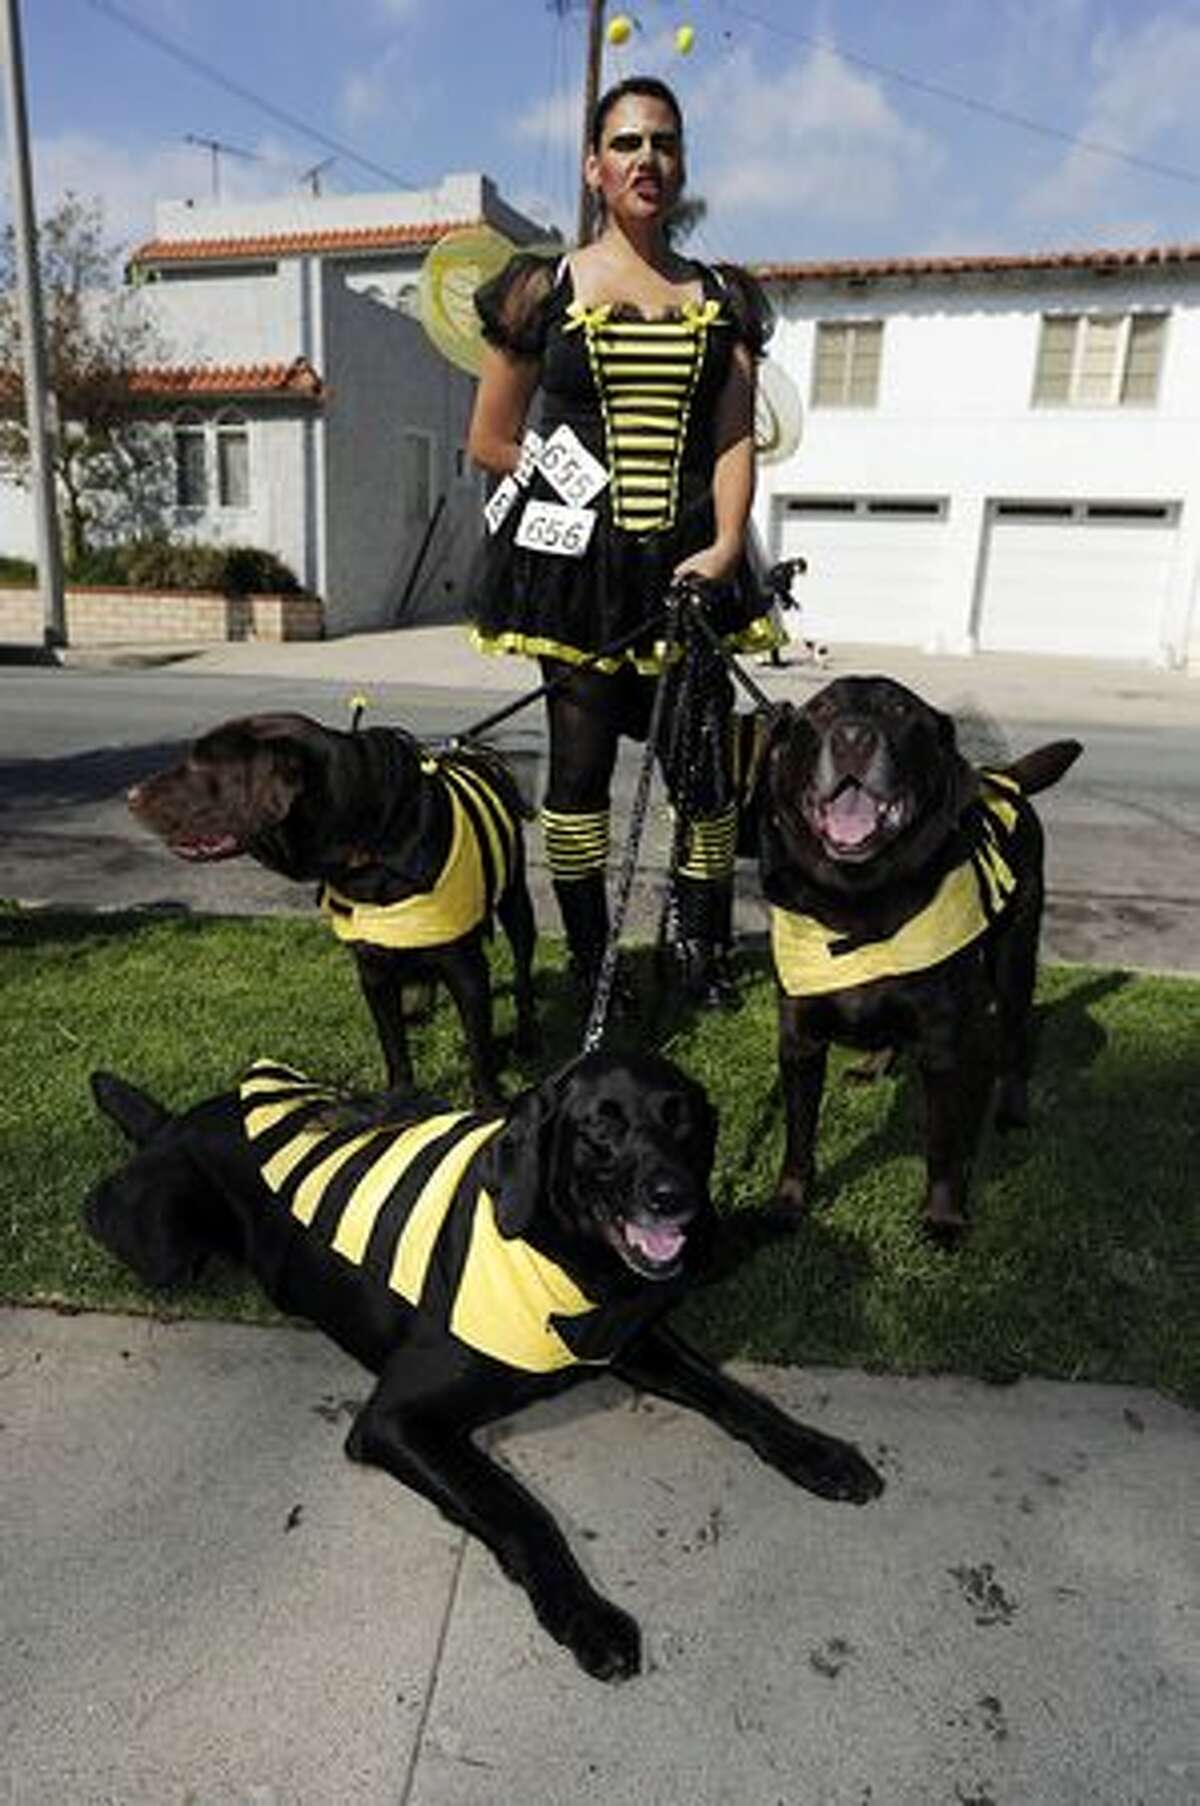 Rhonda Partida and her three Labrador retrievers are dressed as bumble bees at the Halloween Dog Costume Parade in Long Beach, California on October 31, 2010.